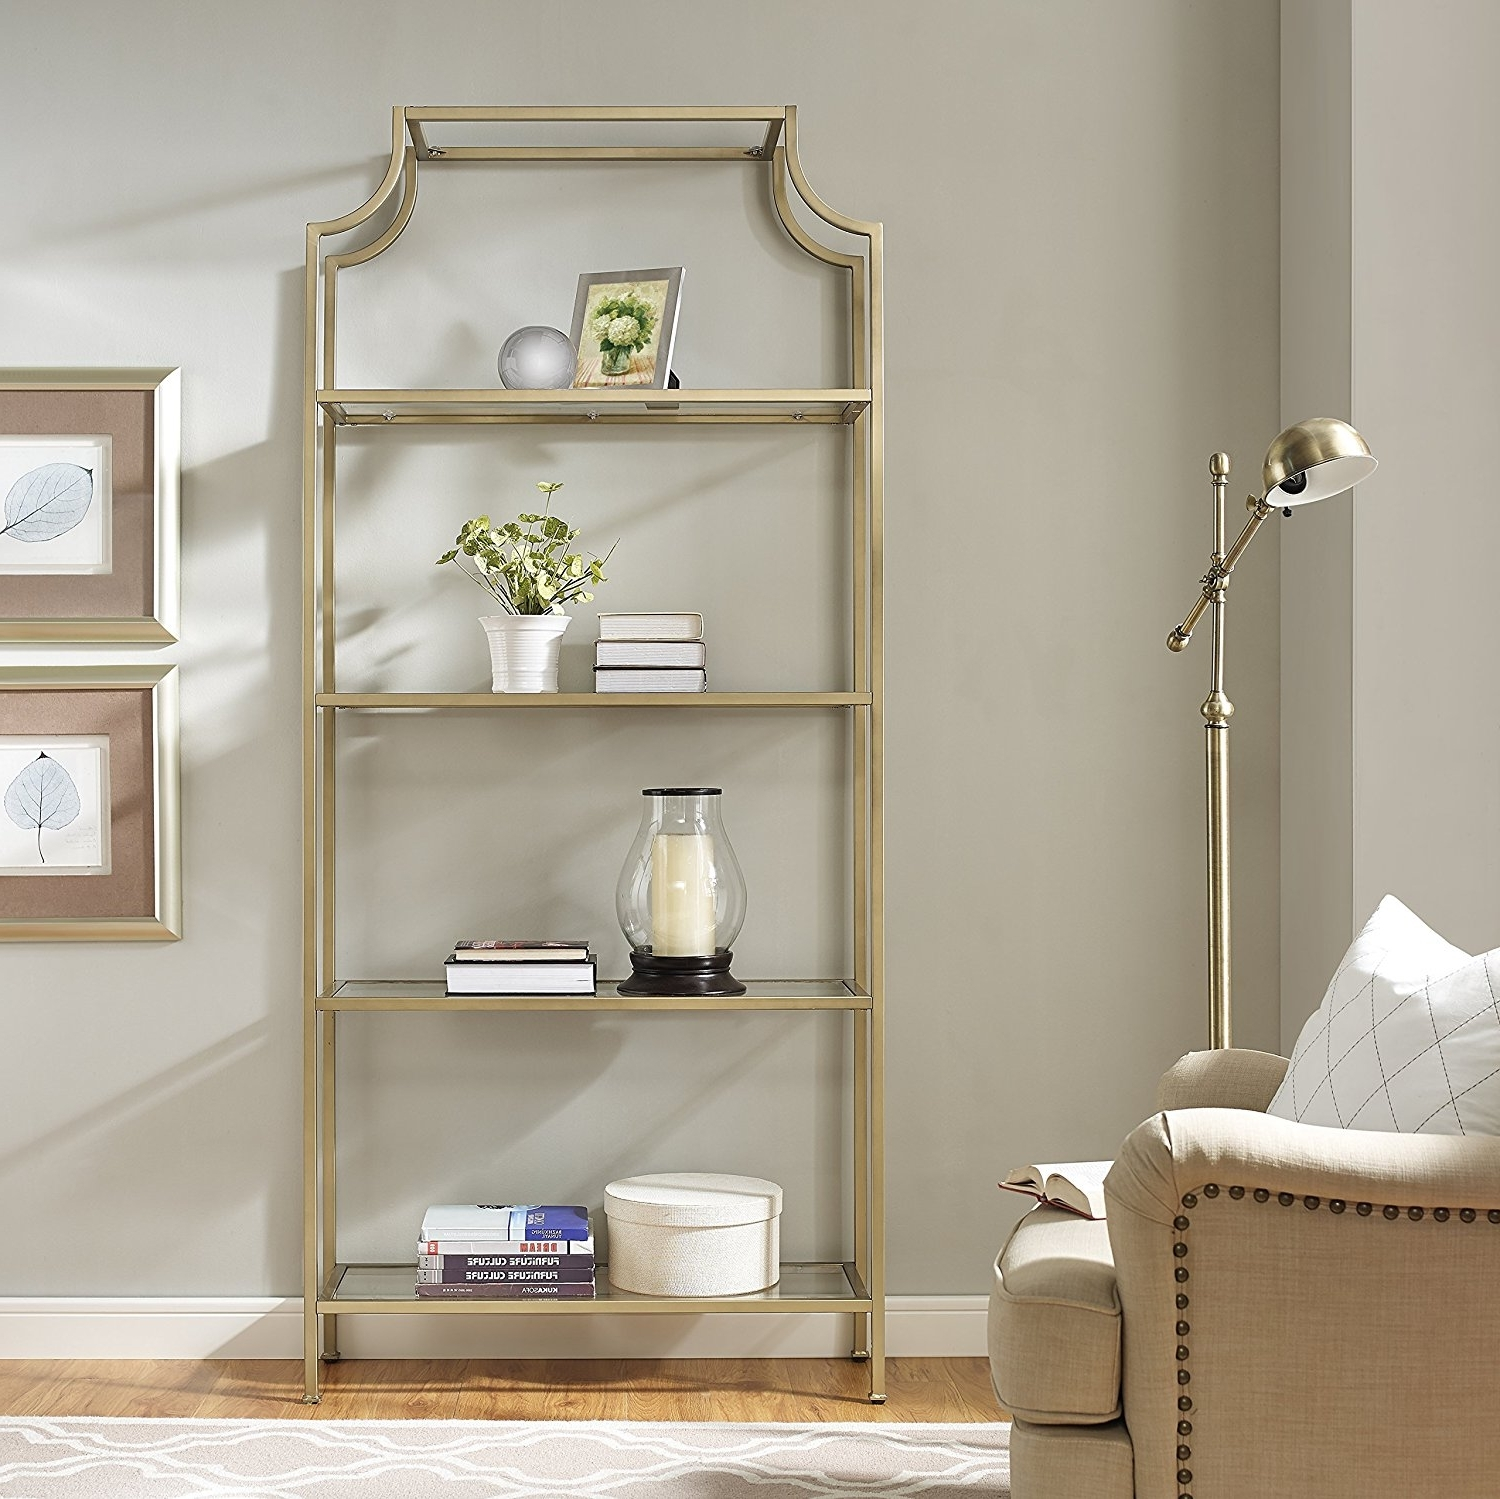 modern metal size industrial furniture pinterest inspirations best bookshelf of magnificent photo history ideas bookcase on gold full elegant new home